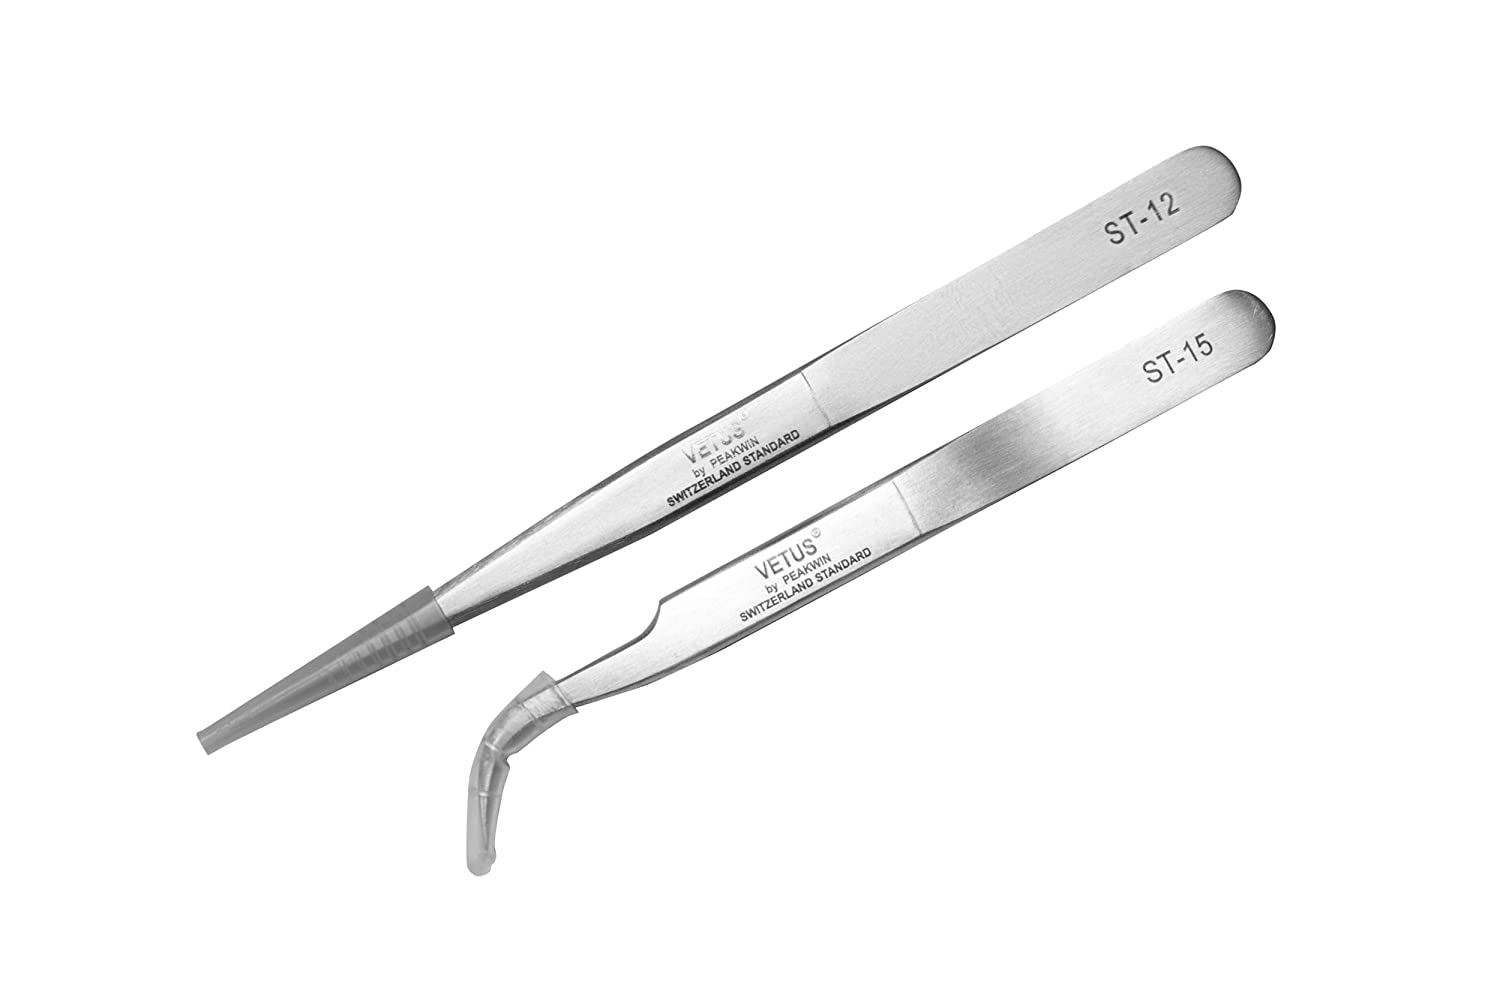 [Set of 2 pcs] Fine Precision Beauty Tweezers Vetus ST-12 (135mm) and ST-15 (120 mm) Professional Tool for Eyelash Extensions, Stainless Steel tweezer Curved/Straight